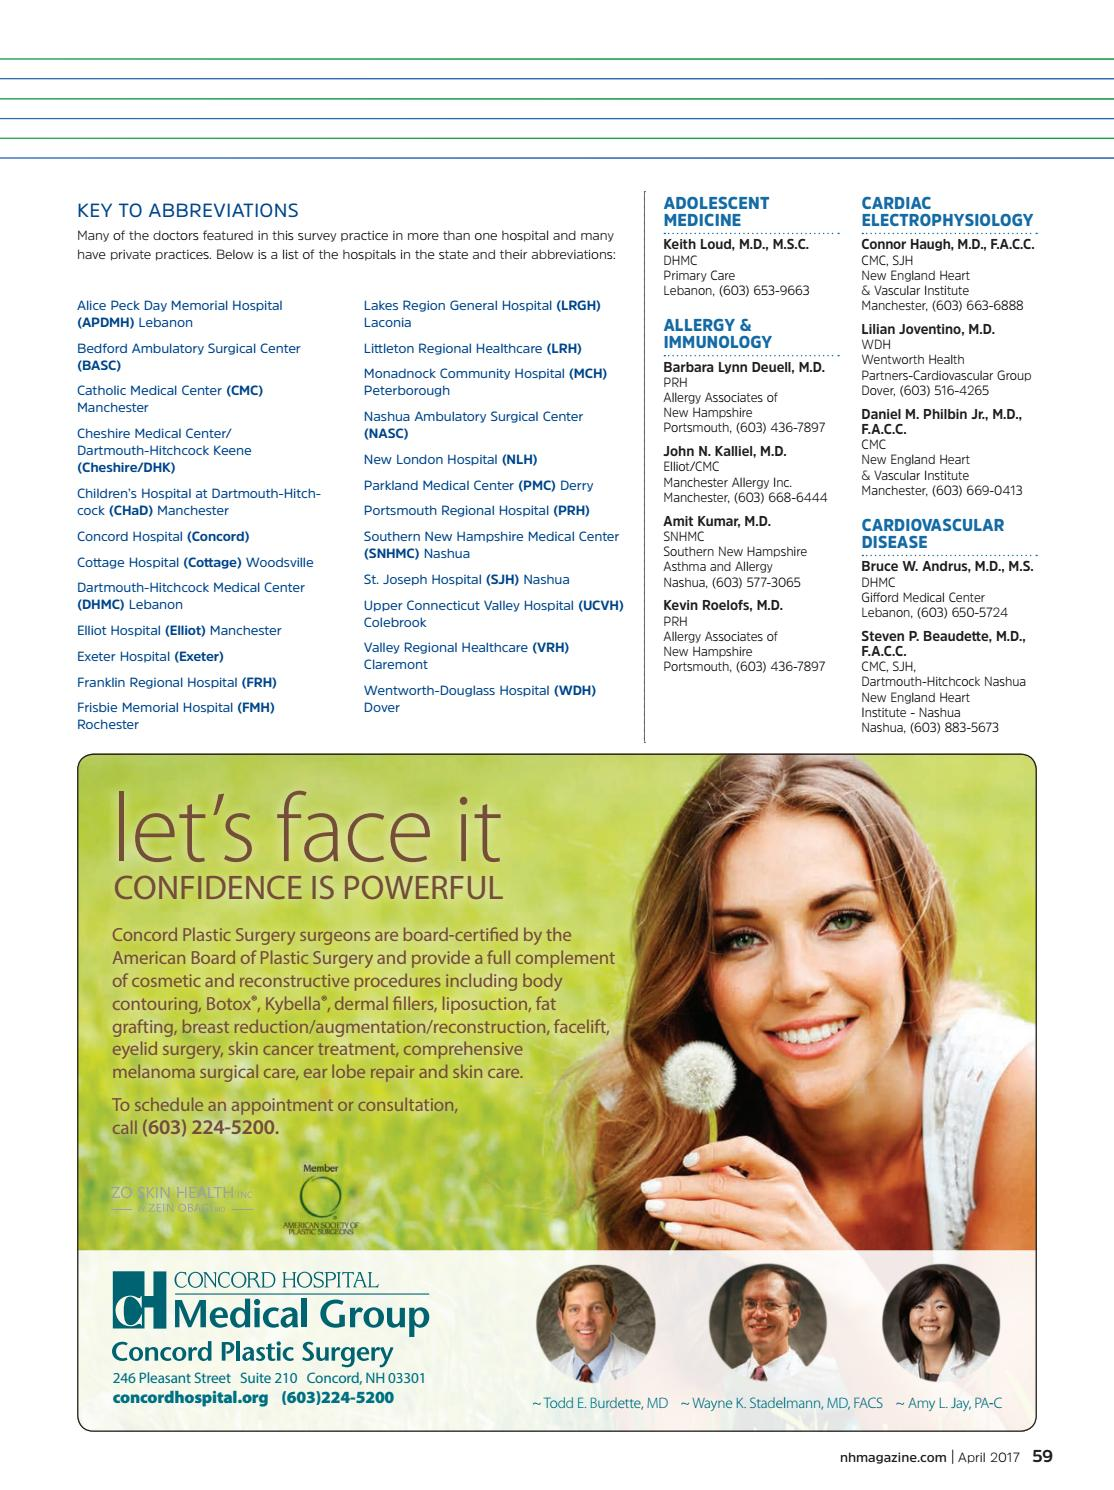 breast reconstruction dartmouth hitchcock